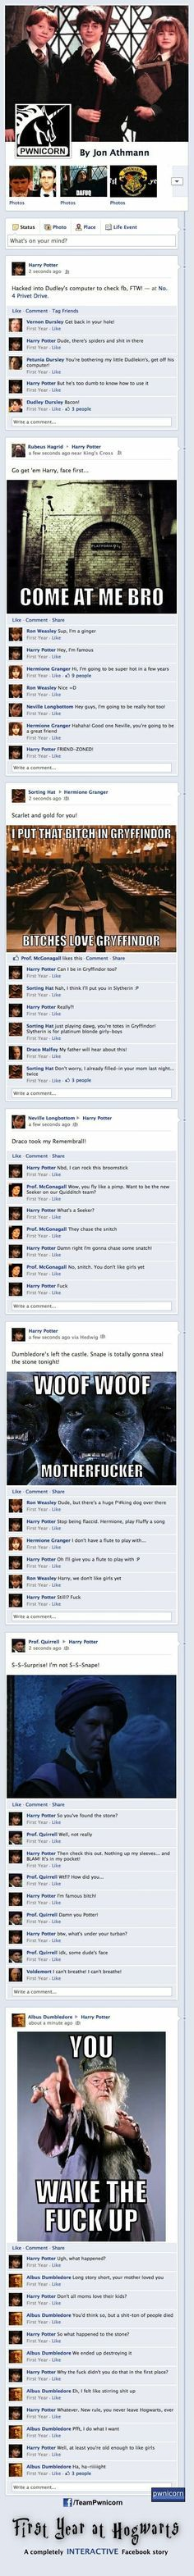 Harry Potter on FB funny pictures funny pics